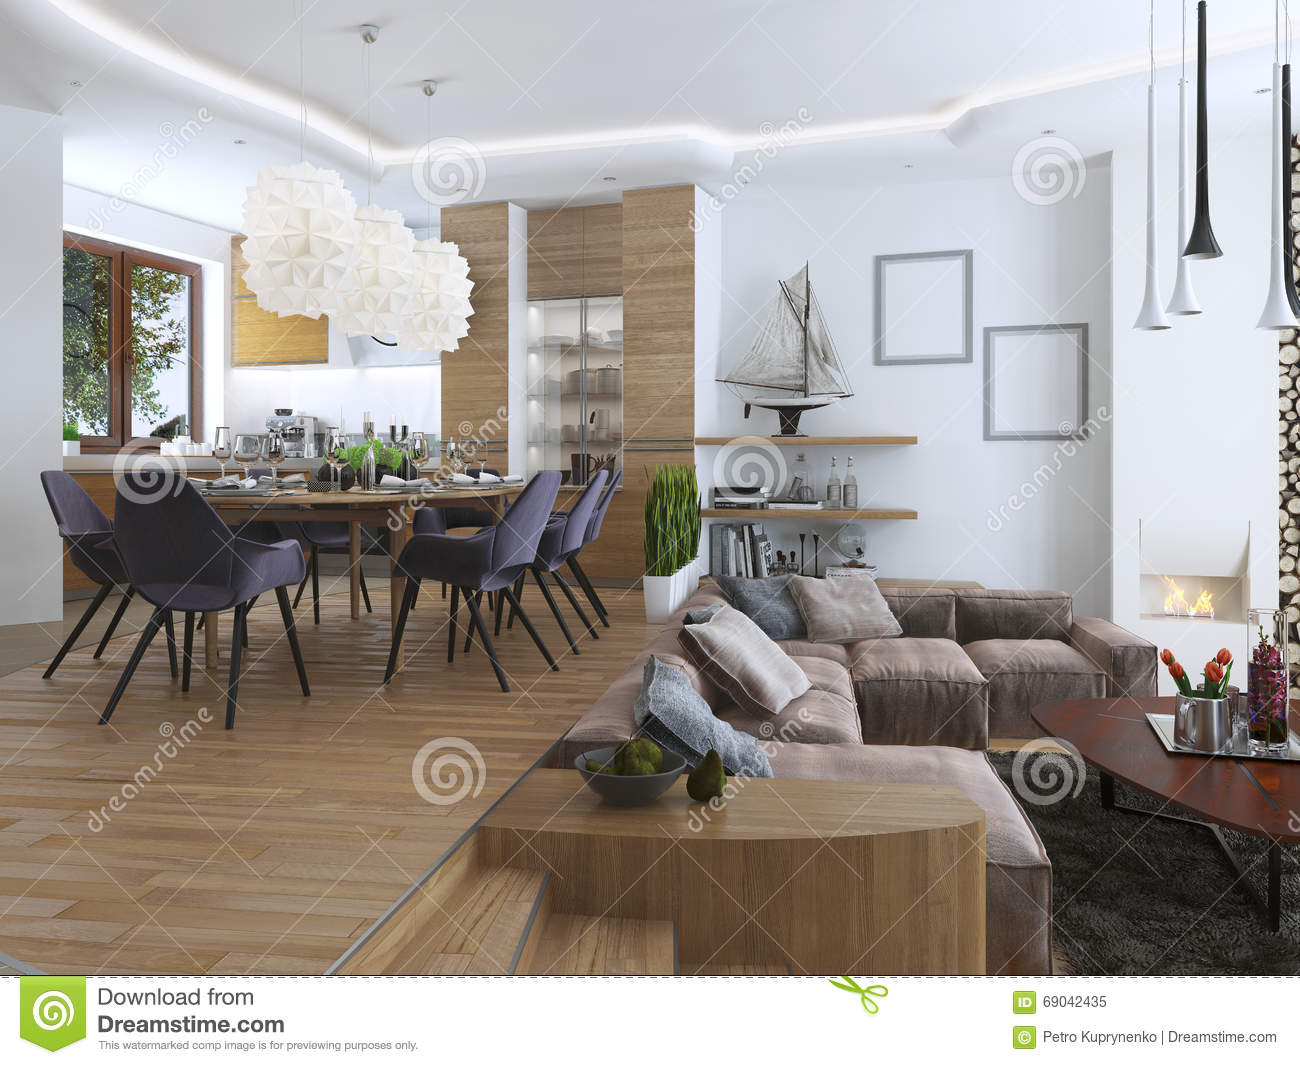 Studio Apartment With Living Room And Dining Room In A